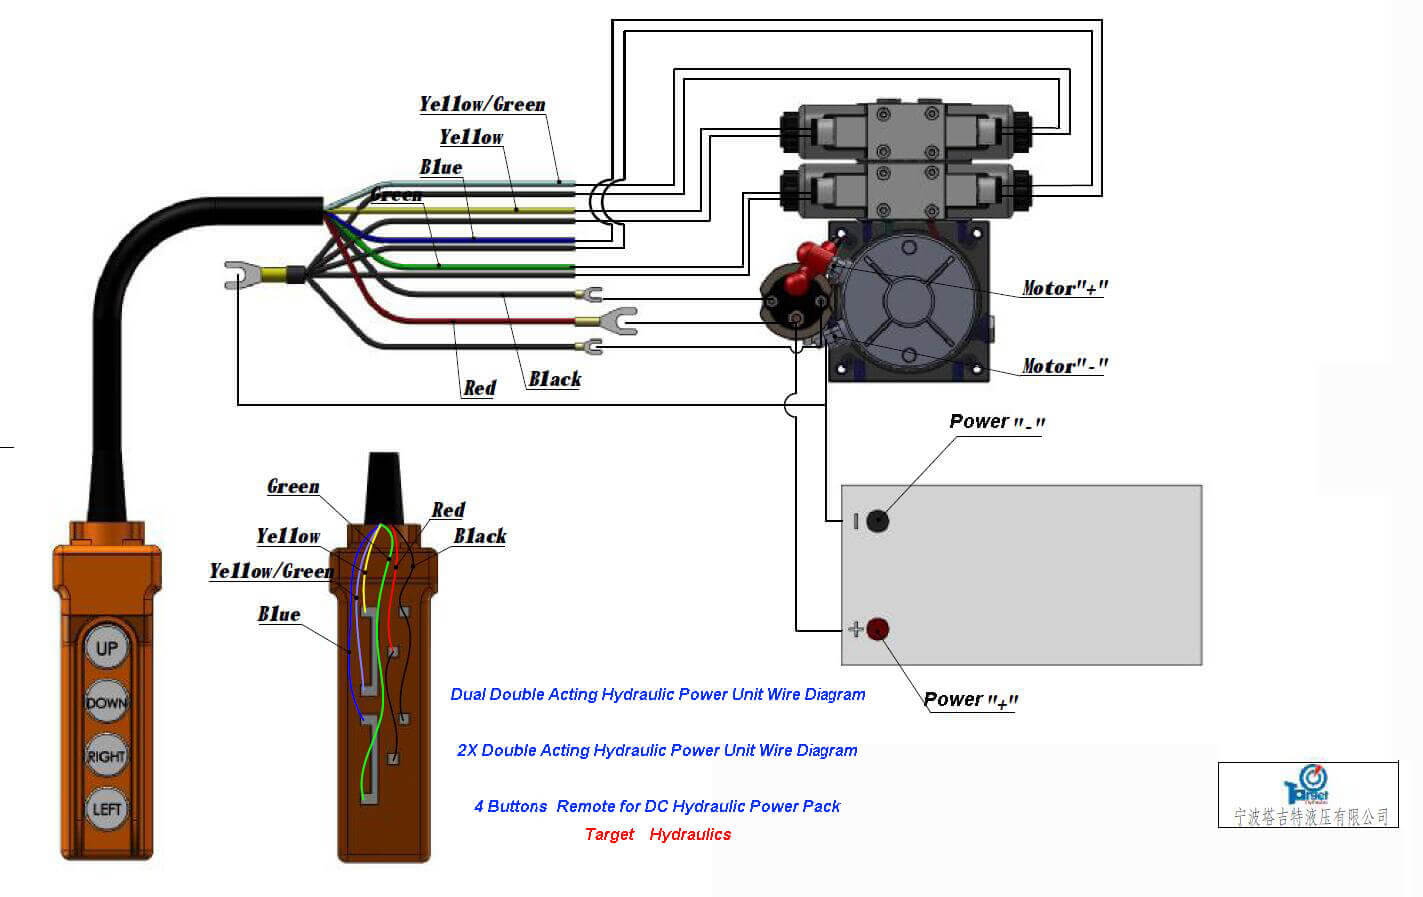 How To Wire Hydraulic Power Packpower Unit Diagram Design Barrel Jack Wiring Dual Double Acting Cylinder Units